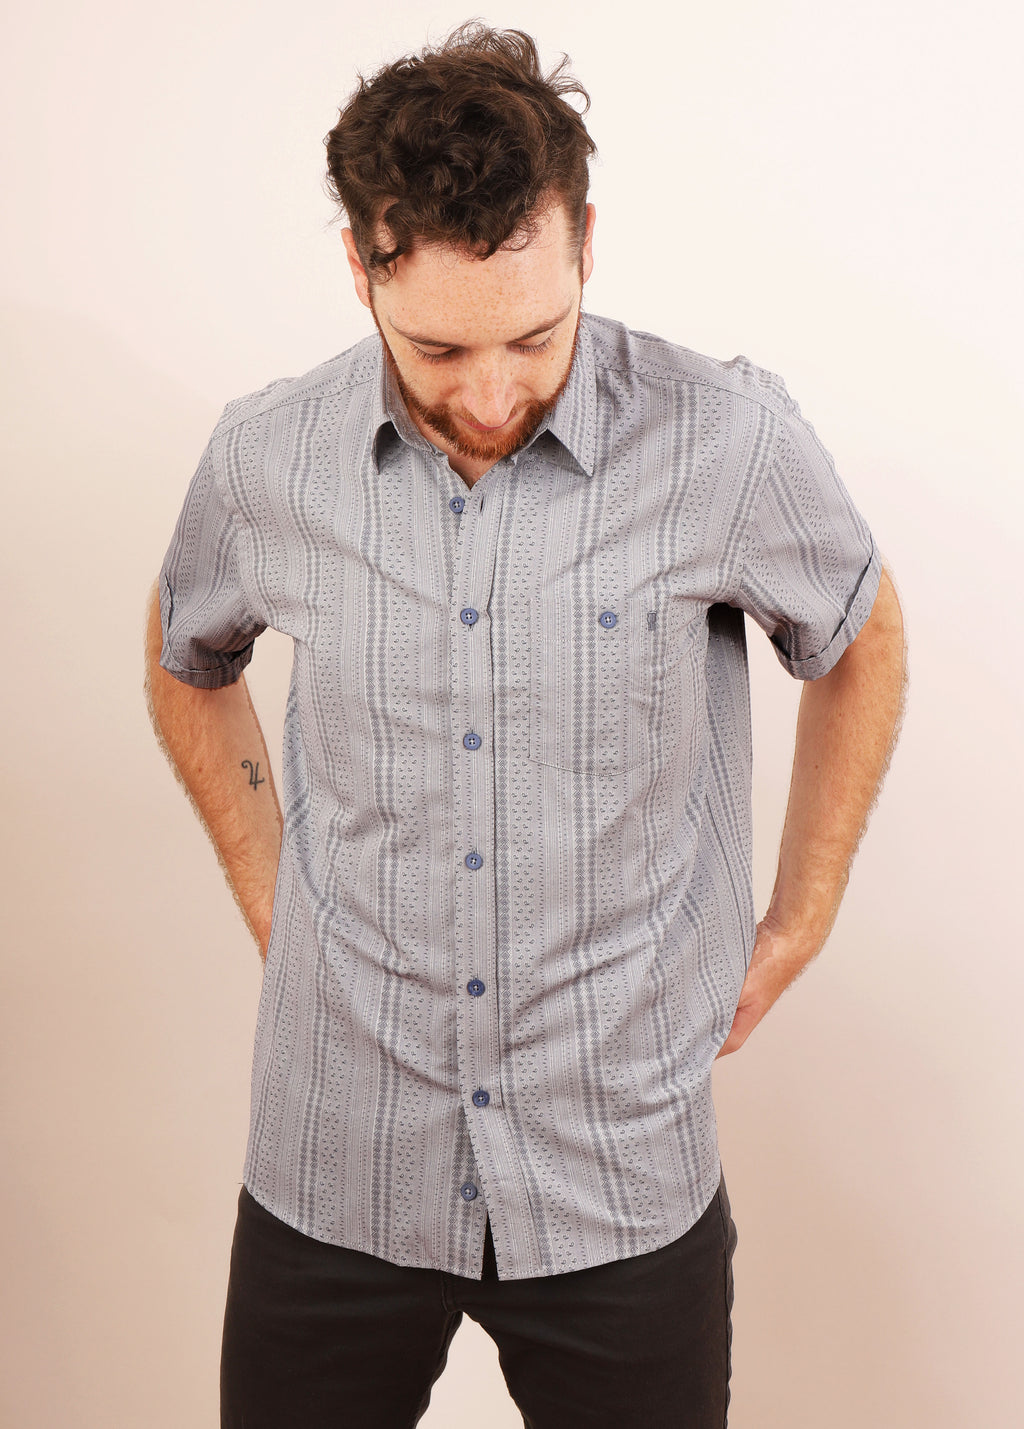 MAN WITH HANDS BEHIND BACK LOOKS DOWN IN GREY MIXED GRADO SHIRT